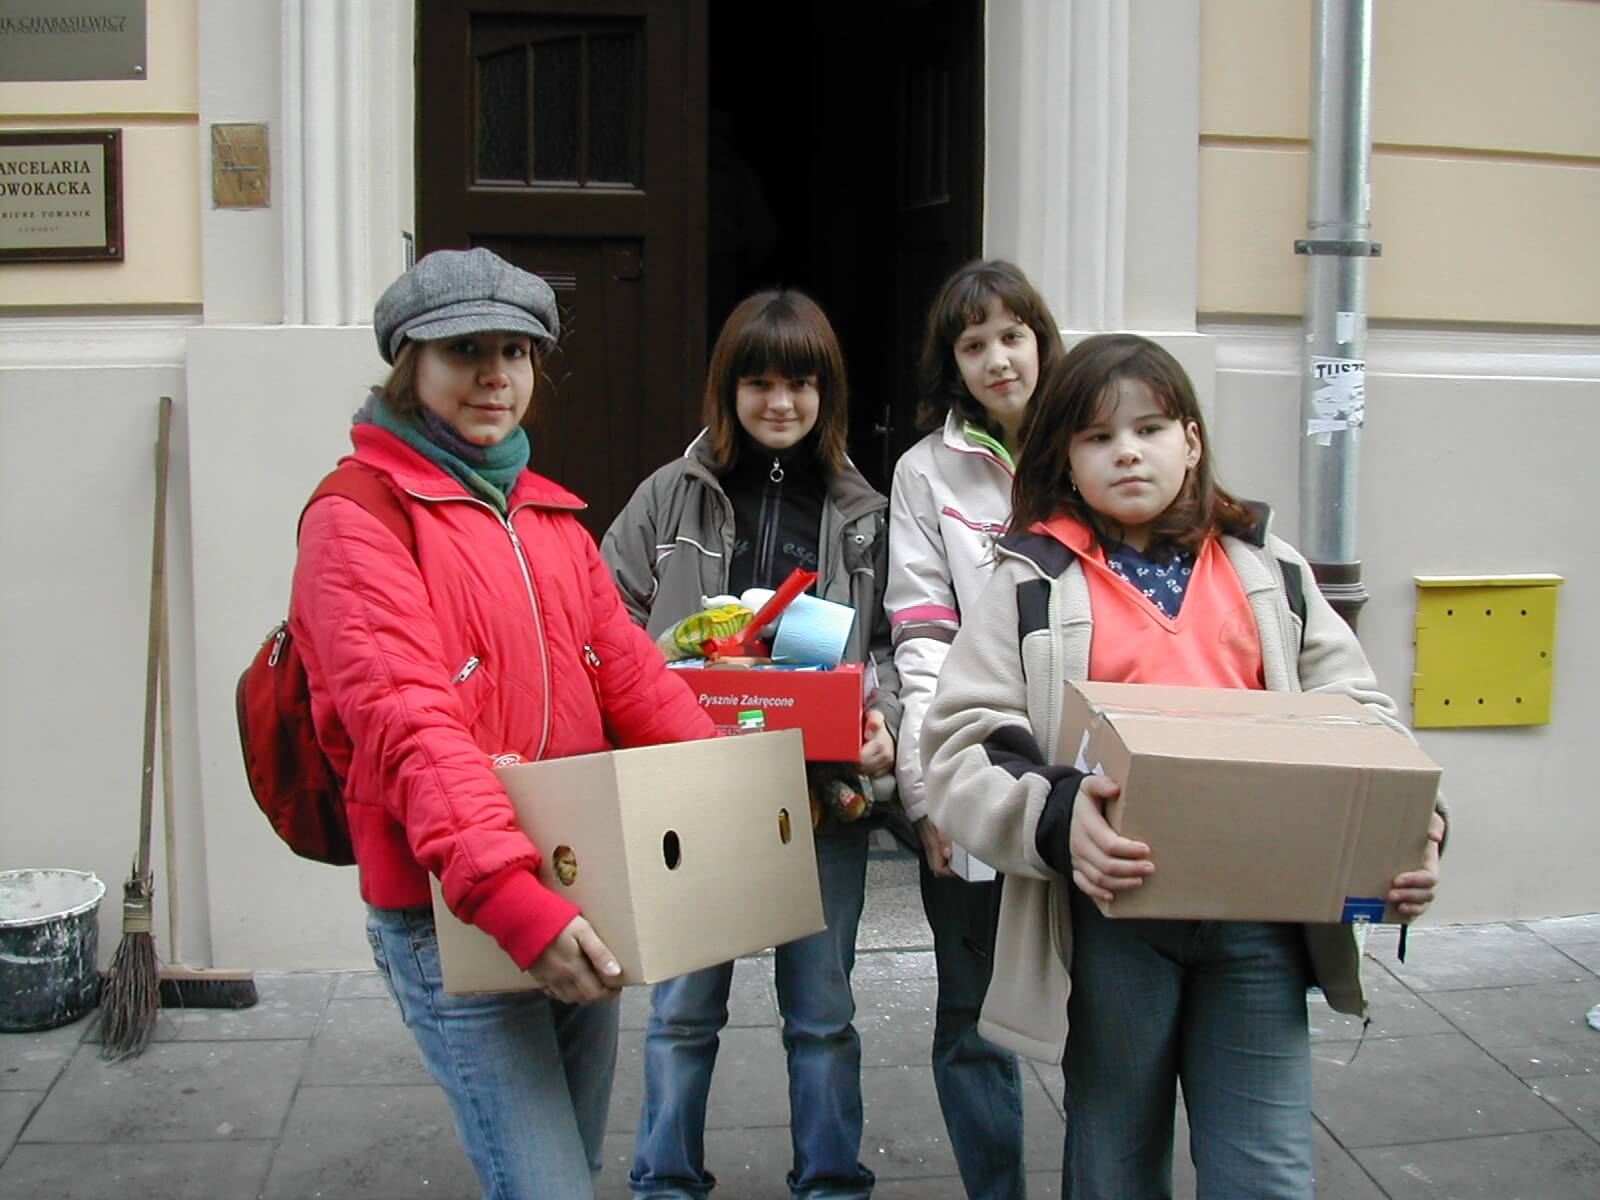 Families were encouraged to work together to bring food and care to the poor of Poland